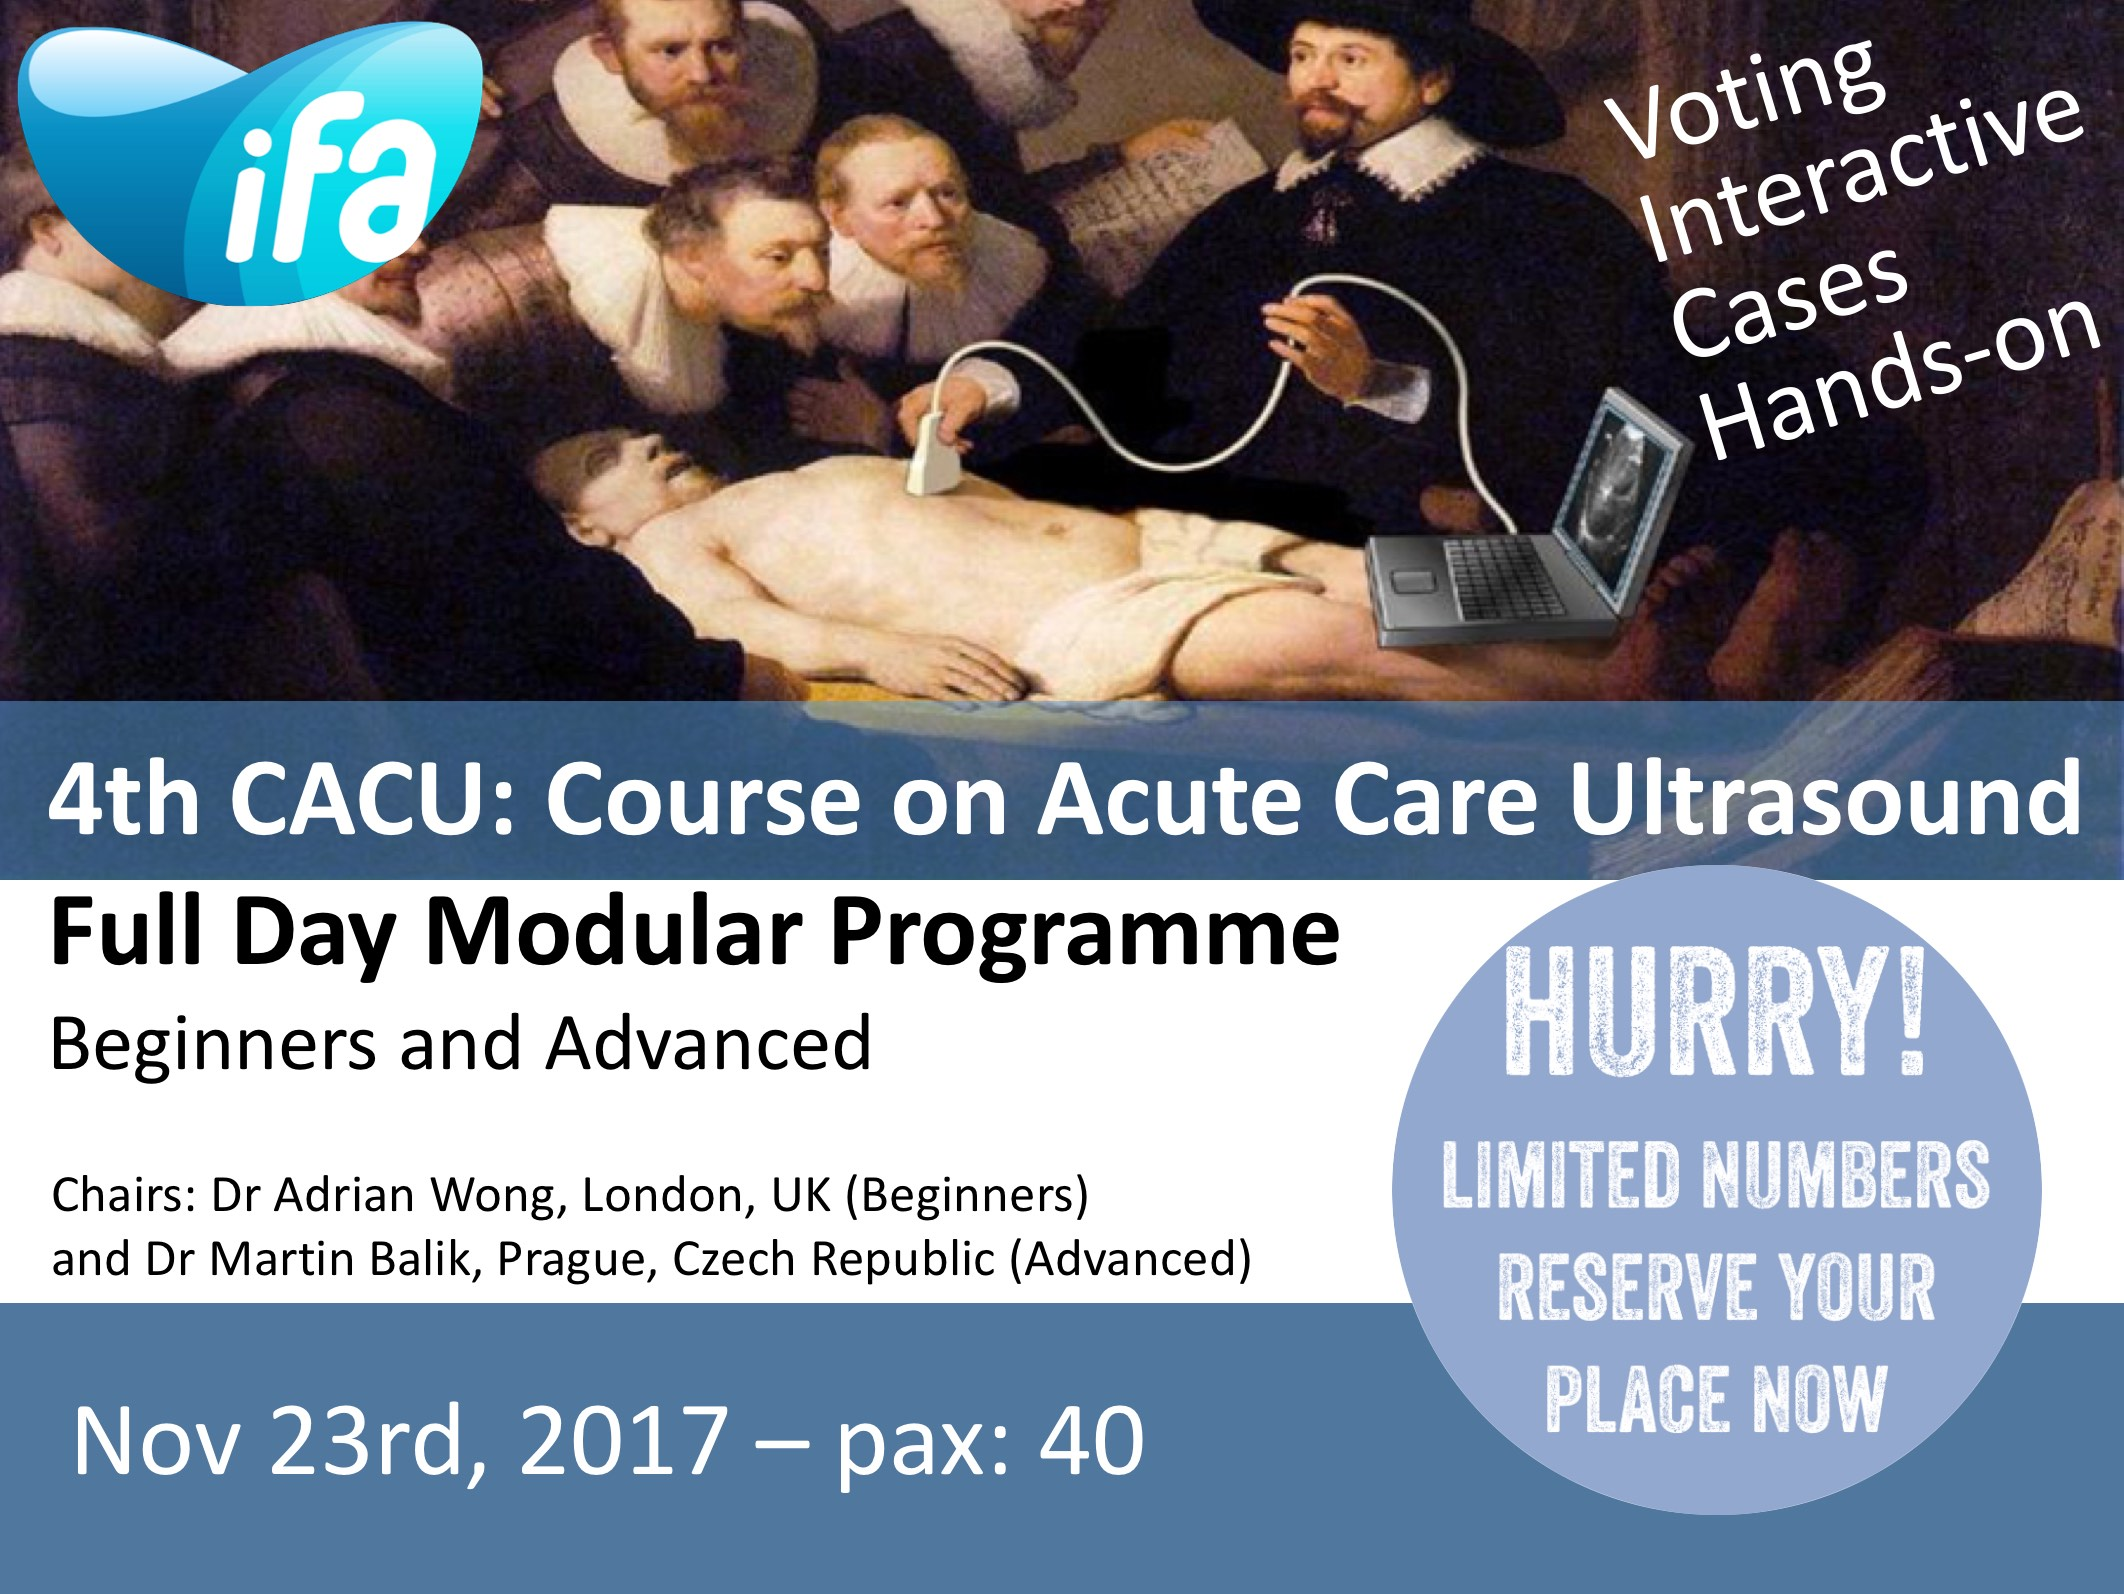 4th CACU: Course on Acute Care Ultrasound